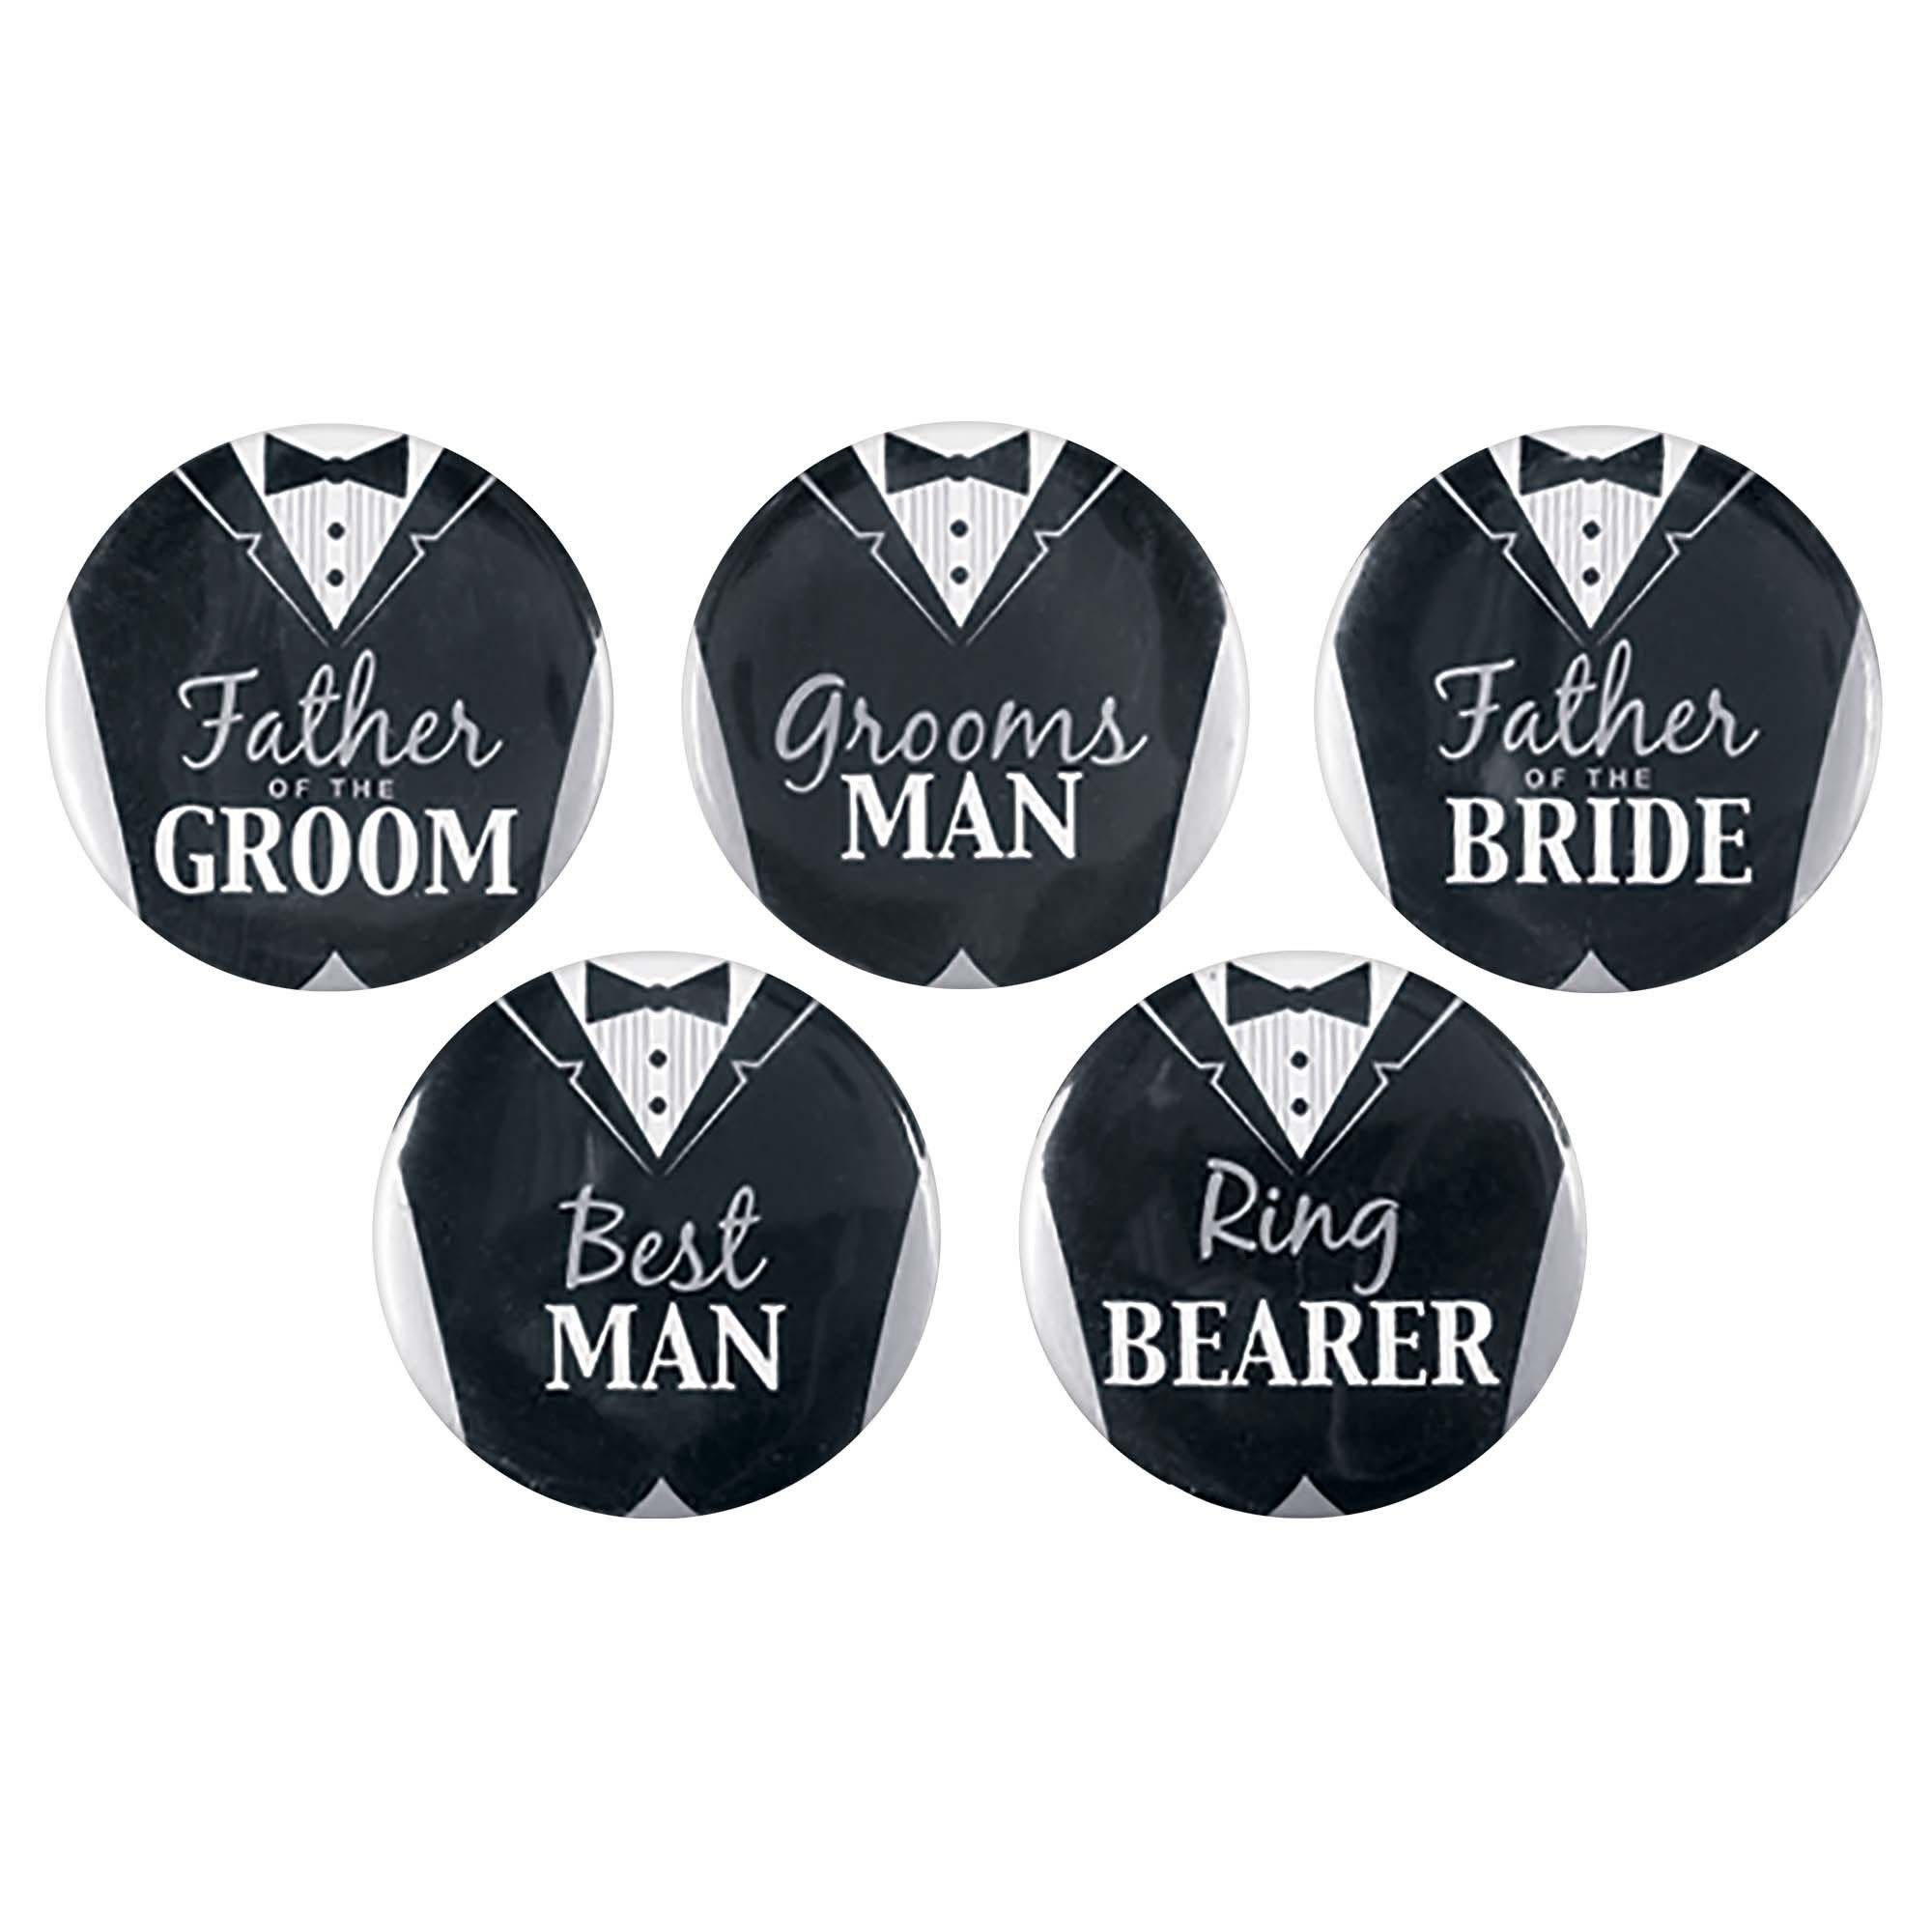 Groom Buttons - 8 Count